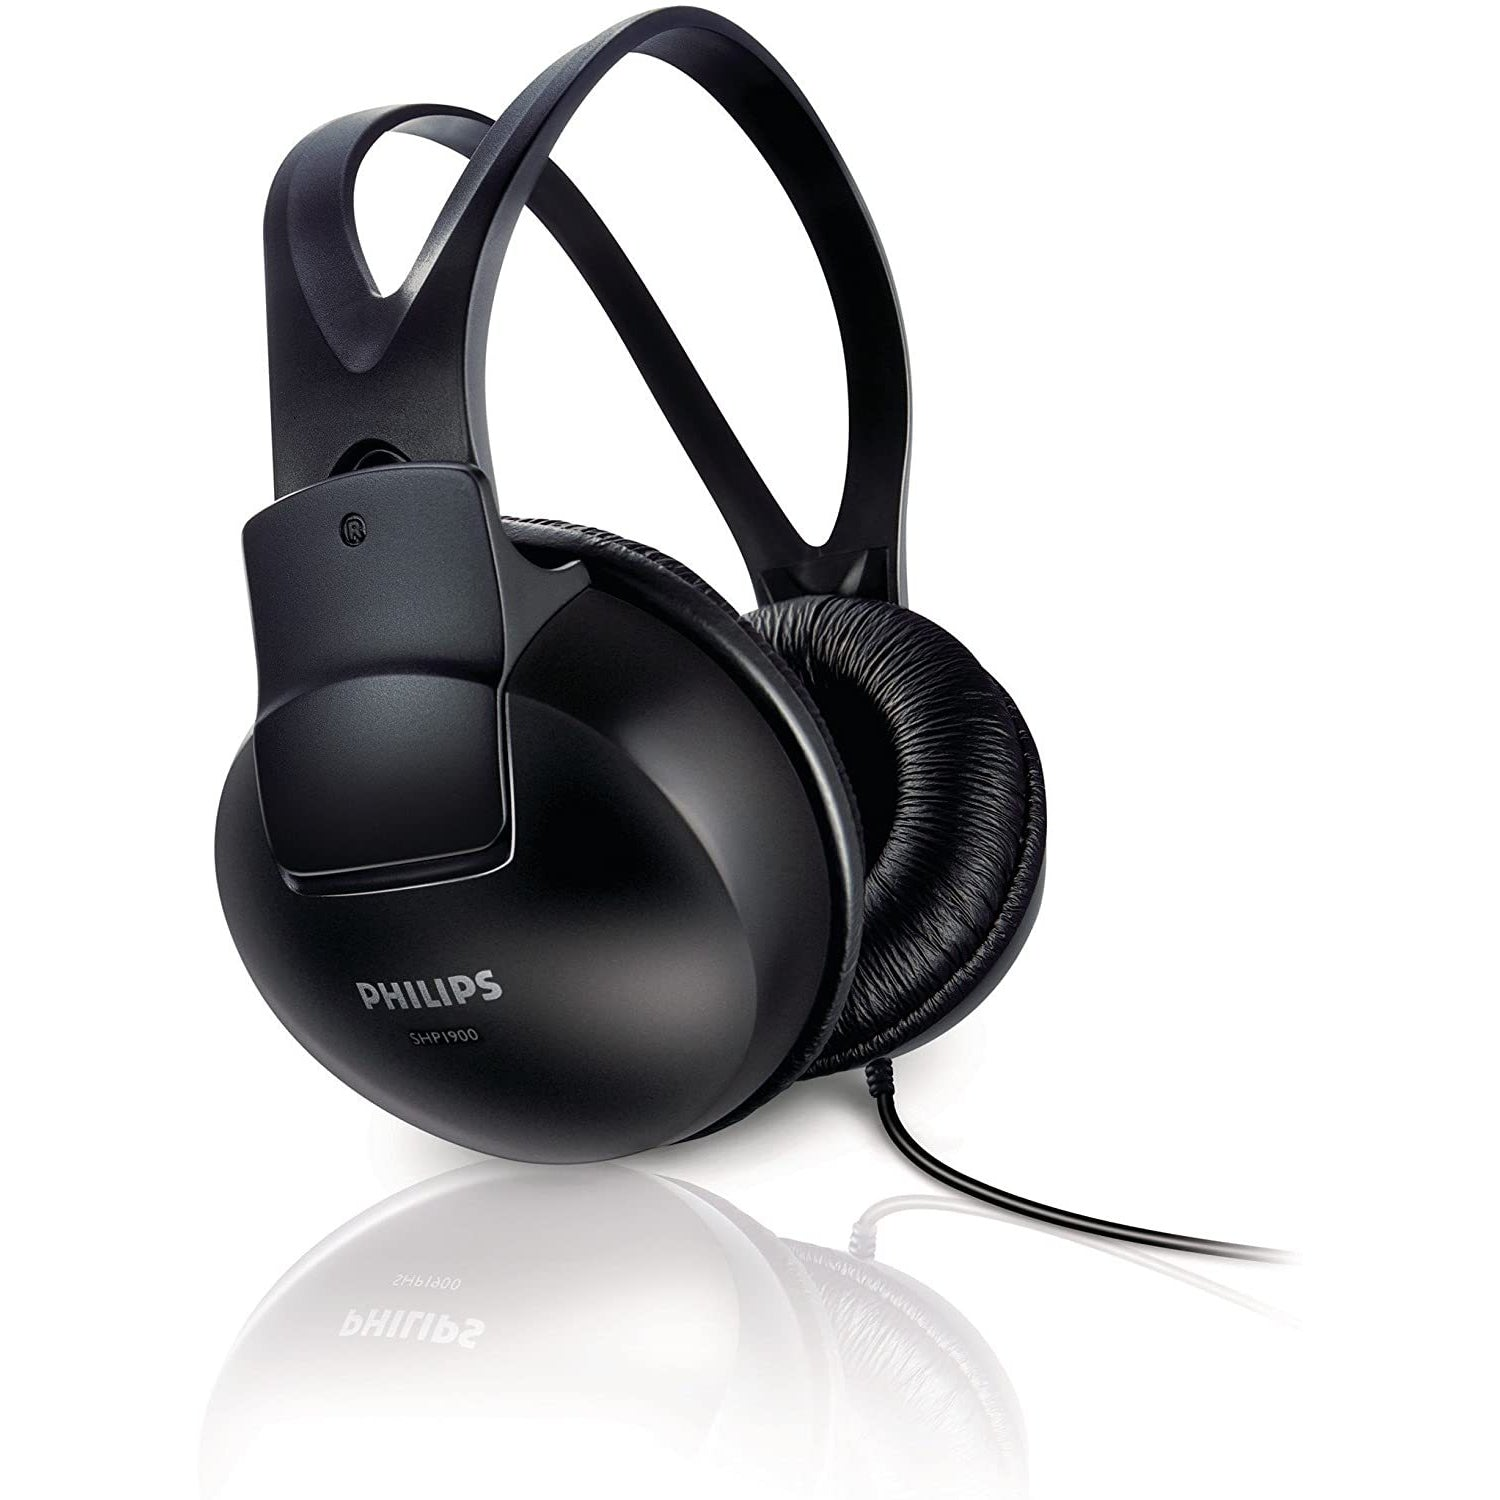 Philips SHP1900 Stereo Over-Ear Headphones - Black [Accessories]